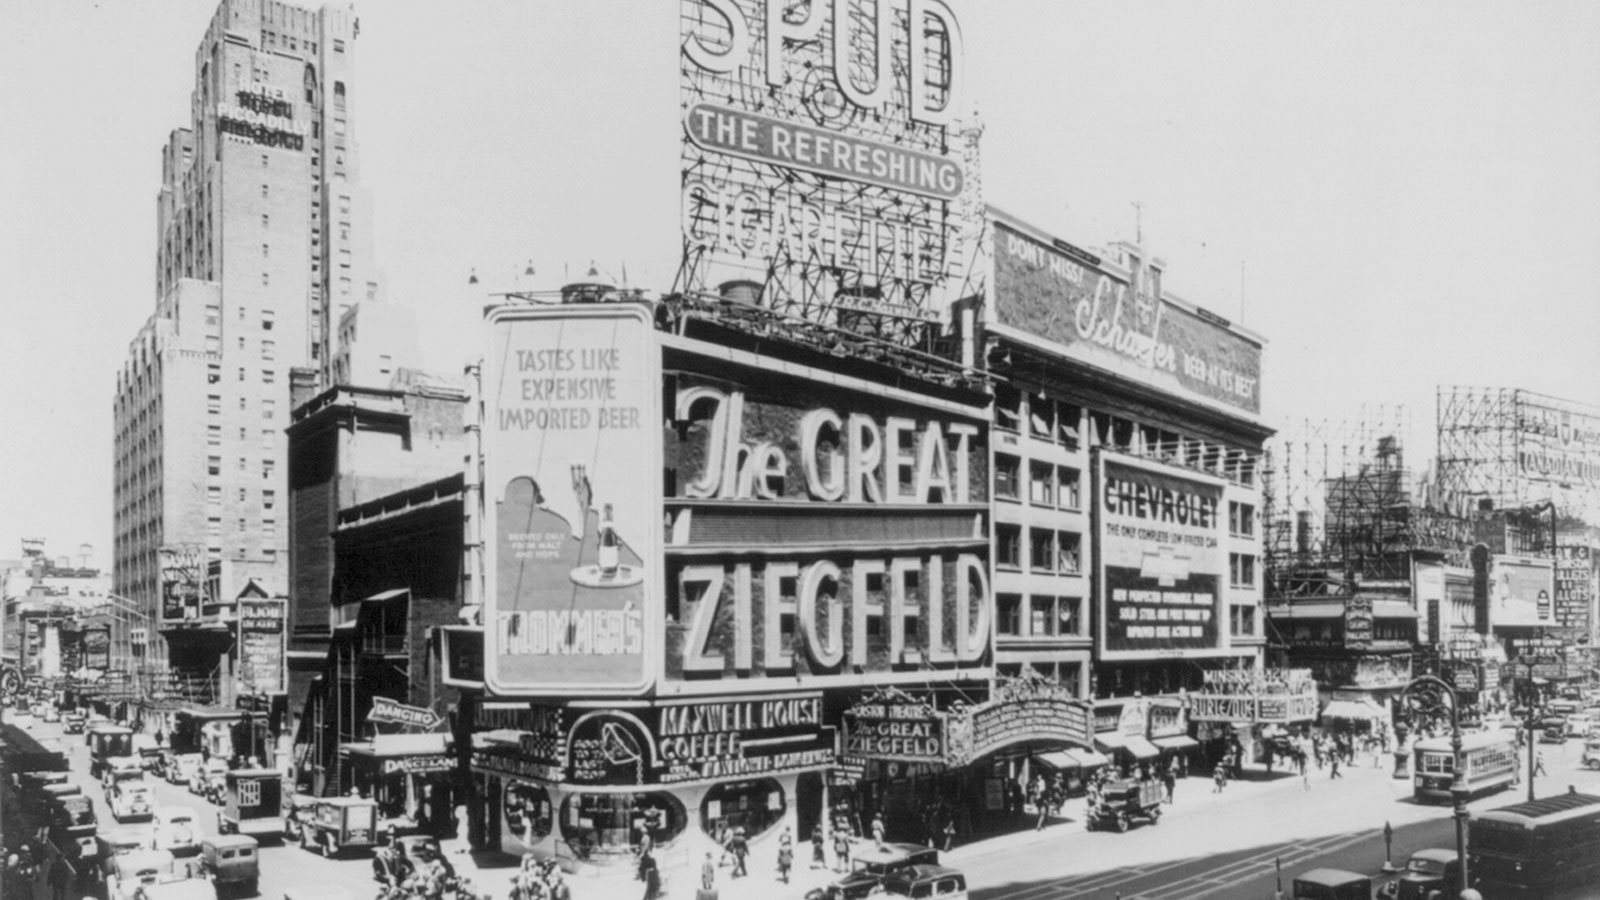 The Astor Theatre on Broadway and West 45th Street in New York City, circa 1936